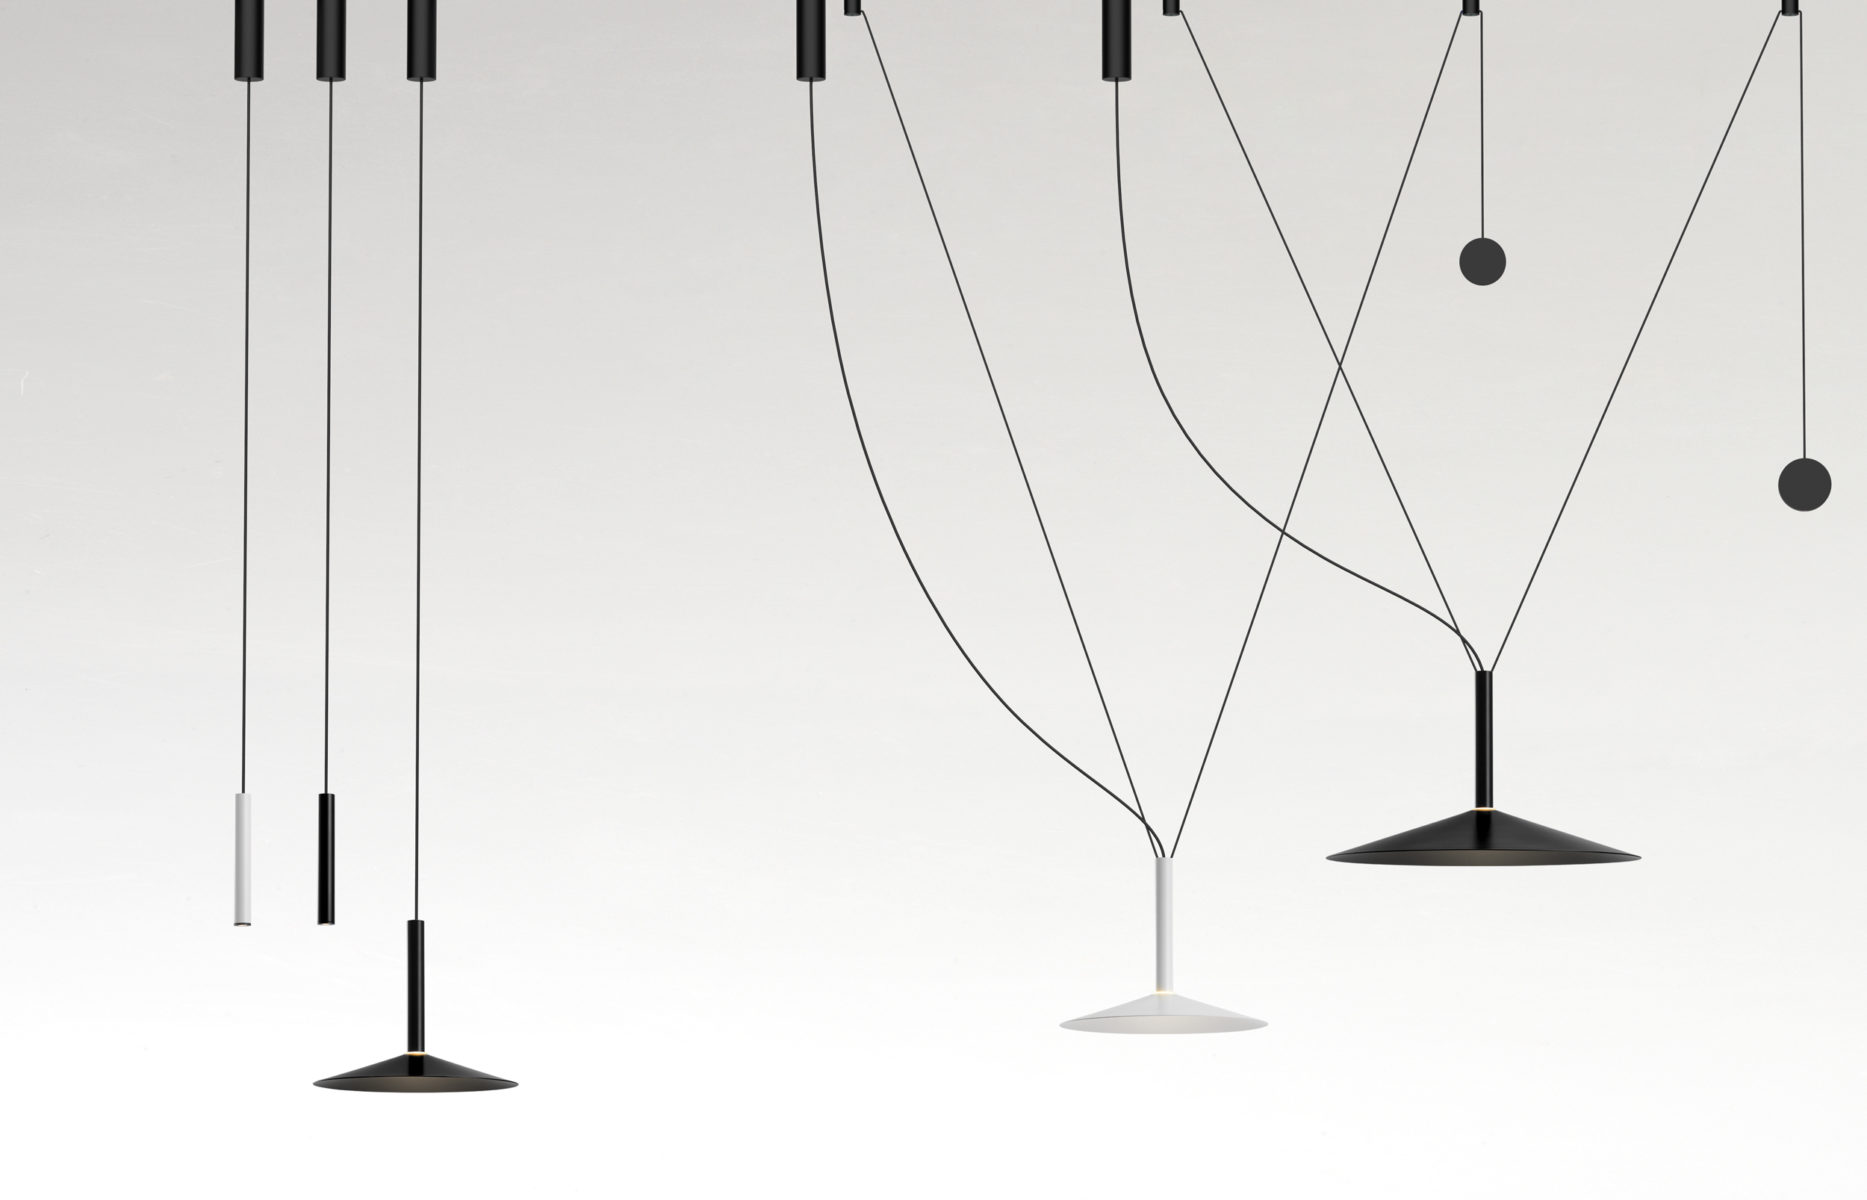 Milana Counterweight Pendant Light - Tubular structure and lacquered aluminium shade with a translucid polycarbonate diffuser. Cable with a counterweight that allows moving the lamp throughout the space.  Moving the point of light, that's the idea behind the new design by Jaume Ramírez. Milana involves a system of modular suspension lamps that combine with one another and can be moved both vertically and horizontally.  Paradoxically, this new design starts by deconstructing the archetype of a lamp; by synthesizing it as much as possible, only a cylindrical body remains, suspended with a built-in LED. To this cylinder we can add different conical shades in oyster white, black, beige, grey or red, in several sizes. But most ingenious of all is that each of these lamps can have a simple counterweight such that when they are hung between two points, they can be moved.  An almost imperceptible lens covers the LED and distributes the light. If only the cylindrical lamp is used, the downward-directed light is impeccable, and when a shade is added, the light escapes, illuminating the lamp itself. This new lighting system gives the user control of the light, offering a new conceptual proposal.  Covering and baring lamps, moving them up, down and sideways. Mixing cylindrical shapes or combining them with decorative lamps. Milana lets you create countless compositions, a symphony of light. | Matter of Stuff